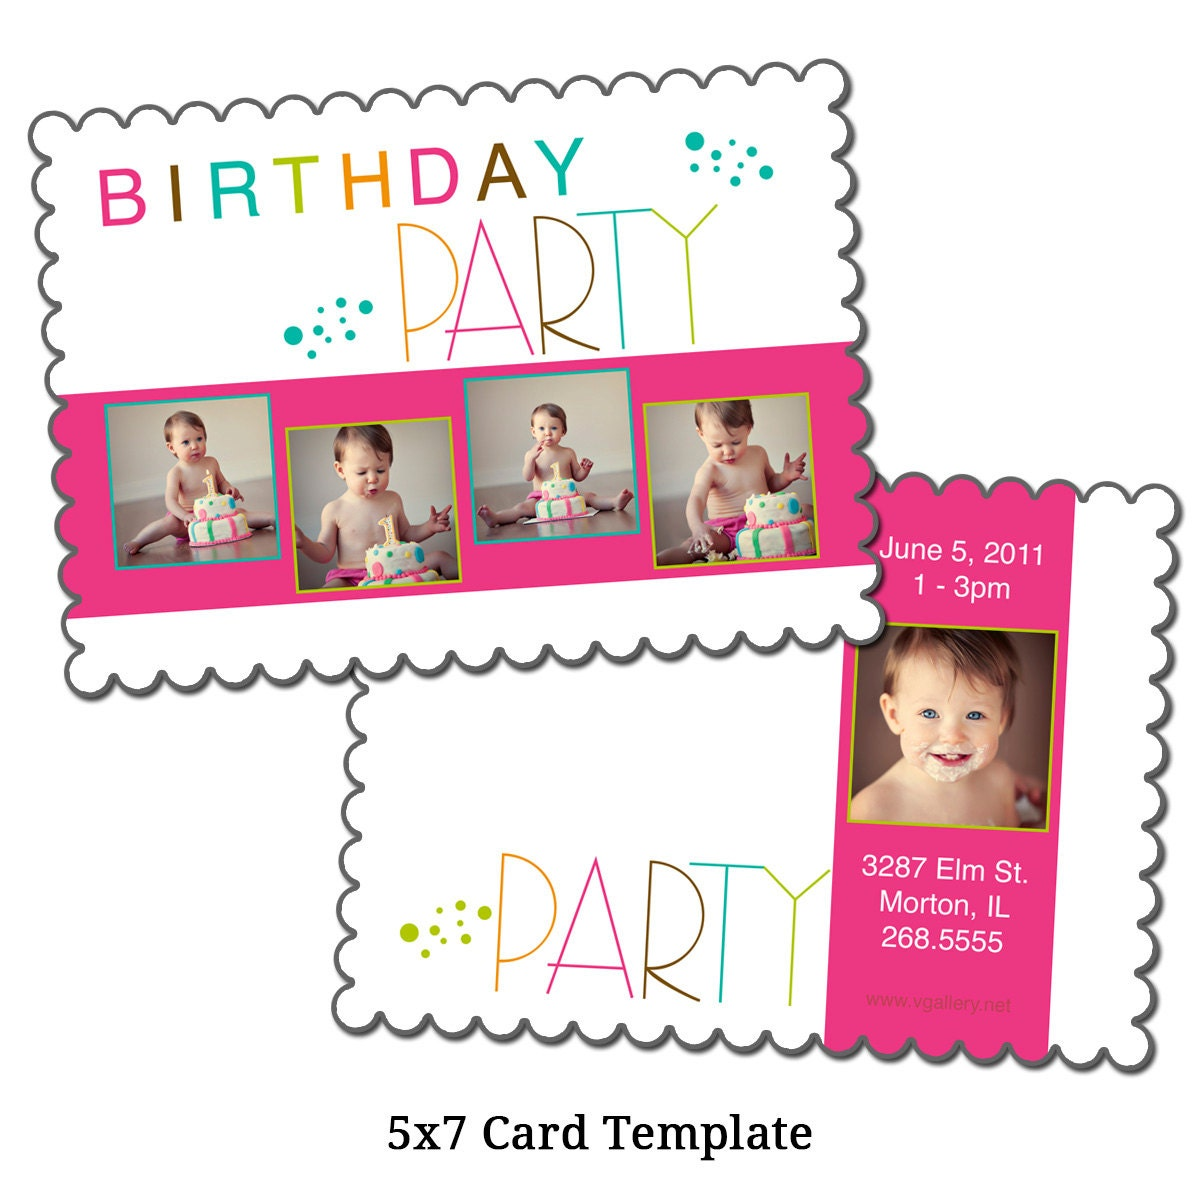 5x7 birthday invitation template birthday girl digital. Black Bedroom Furniture Sets. Home Design Ideas